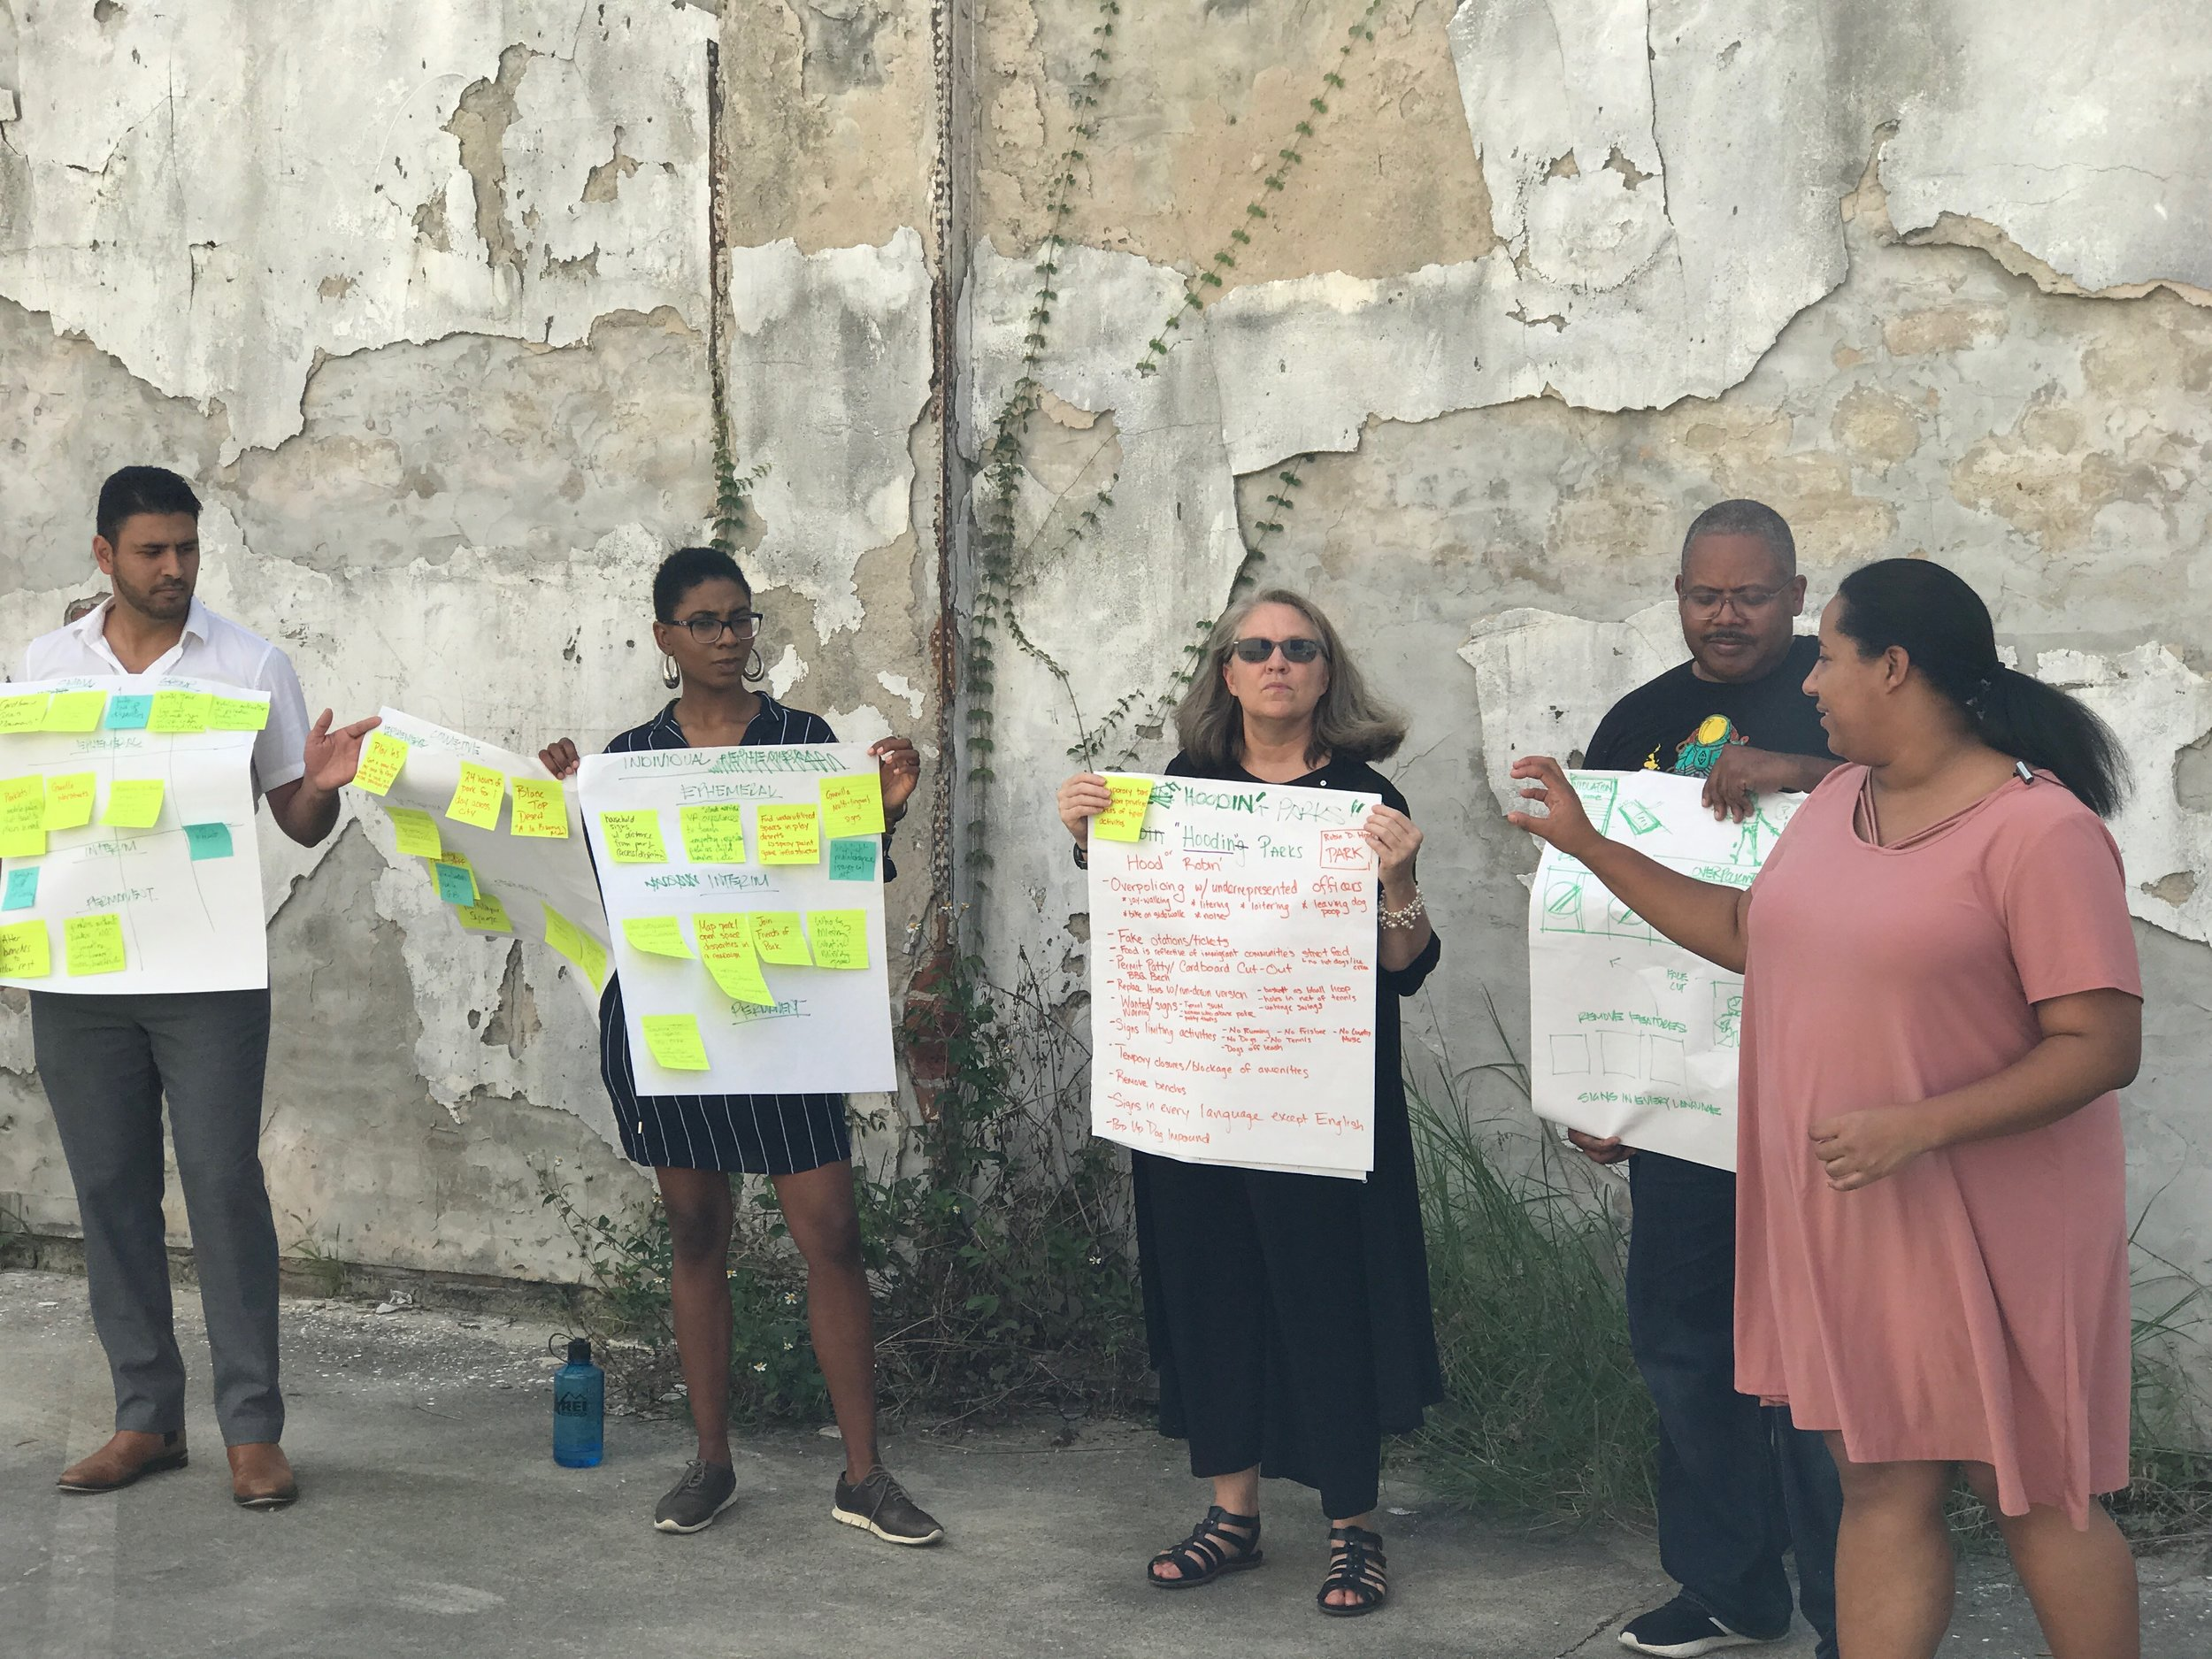 Workshopping at the 2018 Design Justice Summit